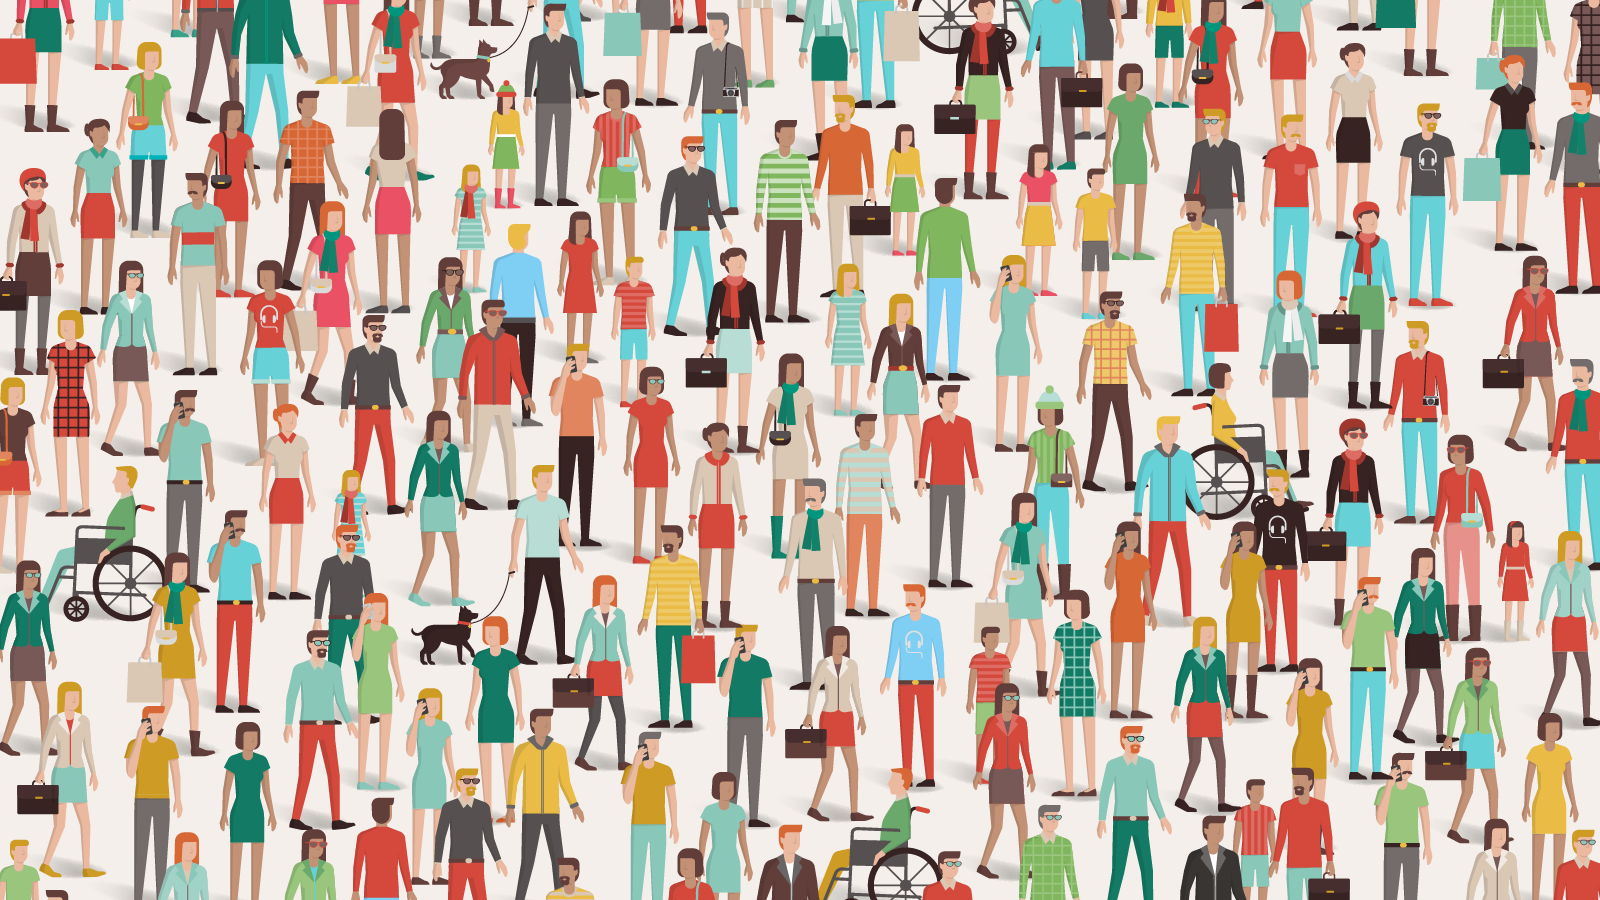 Crowd of people_illustration-1.png